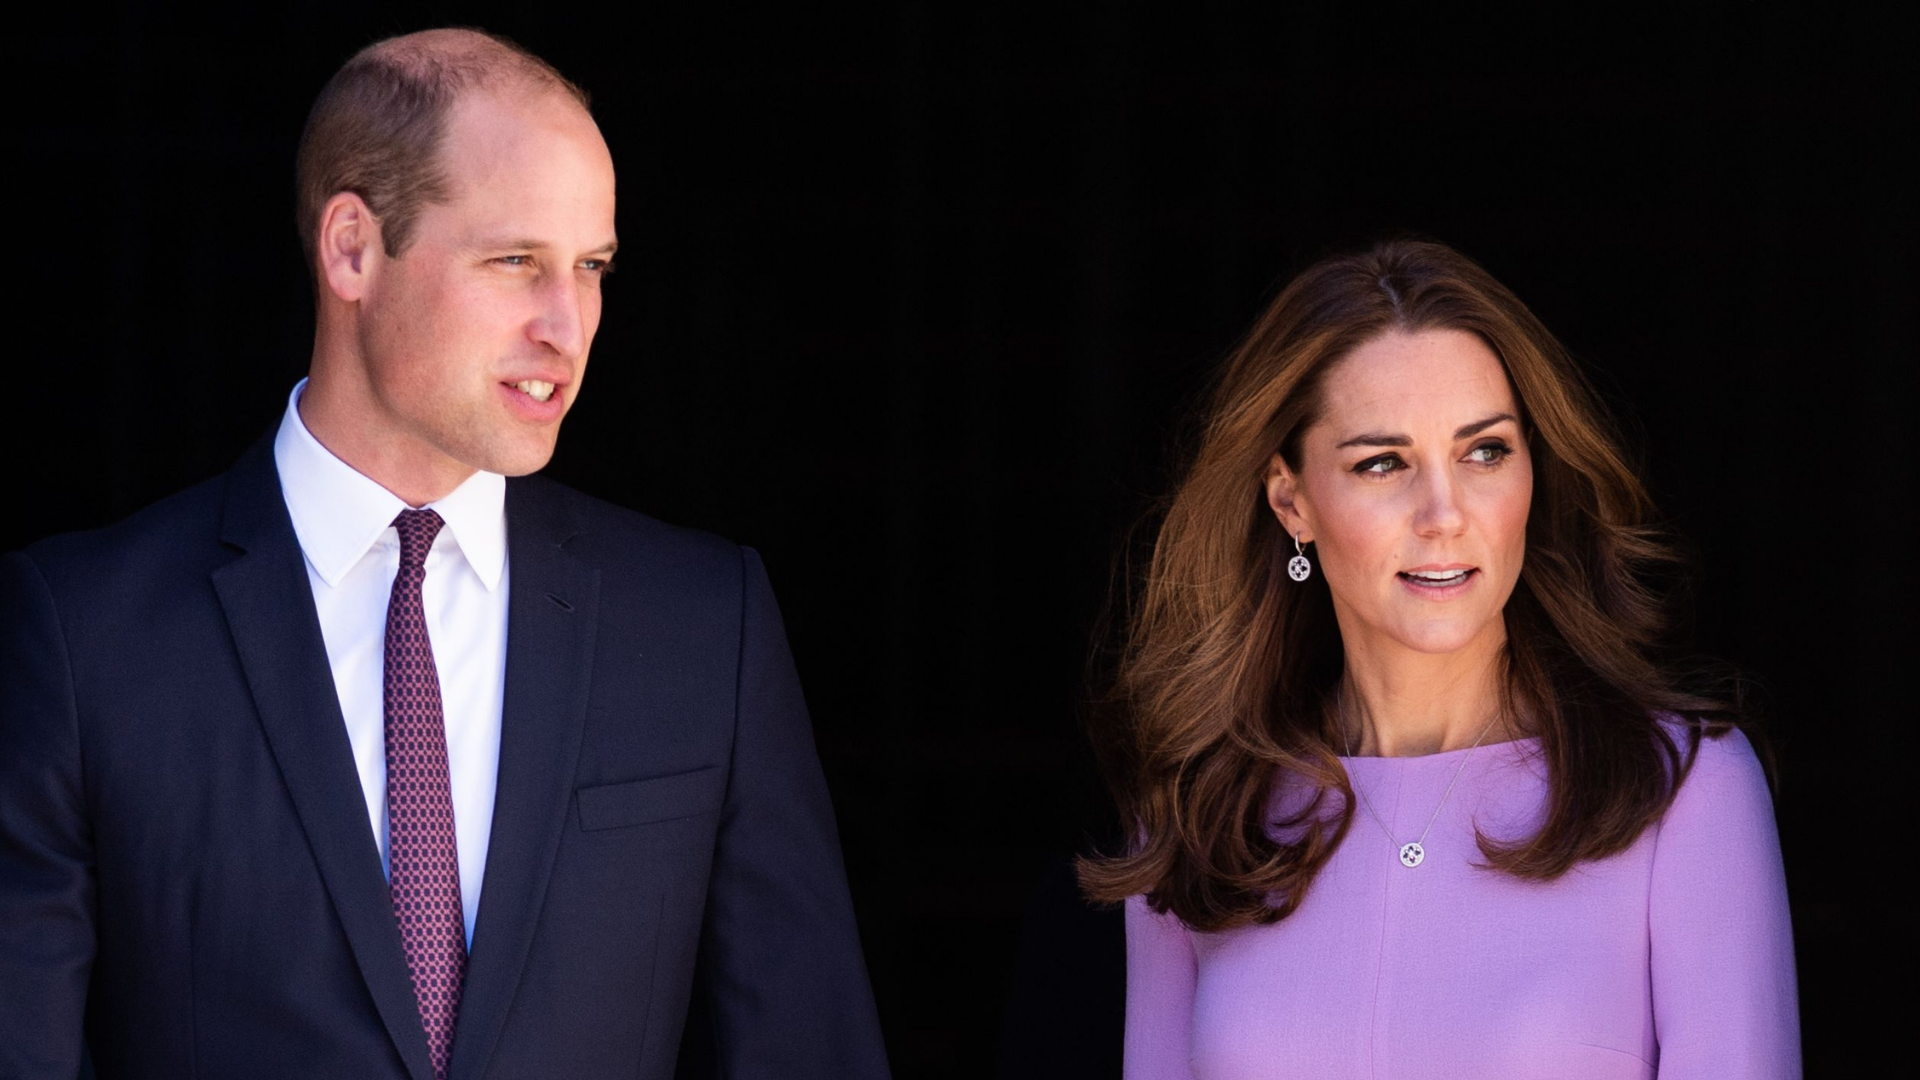 Why Kate Middleton Won't Be Spending Her Birthday With Prince William